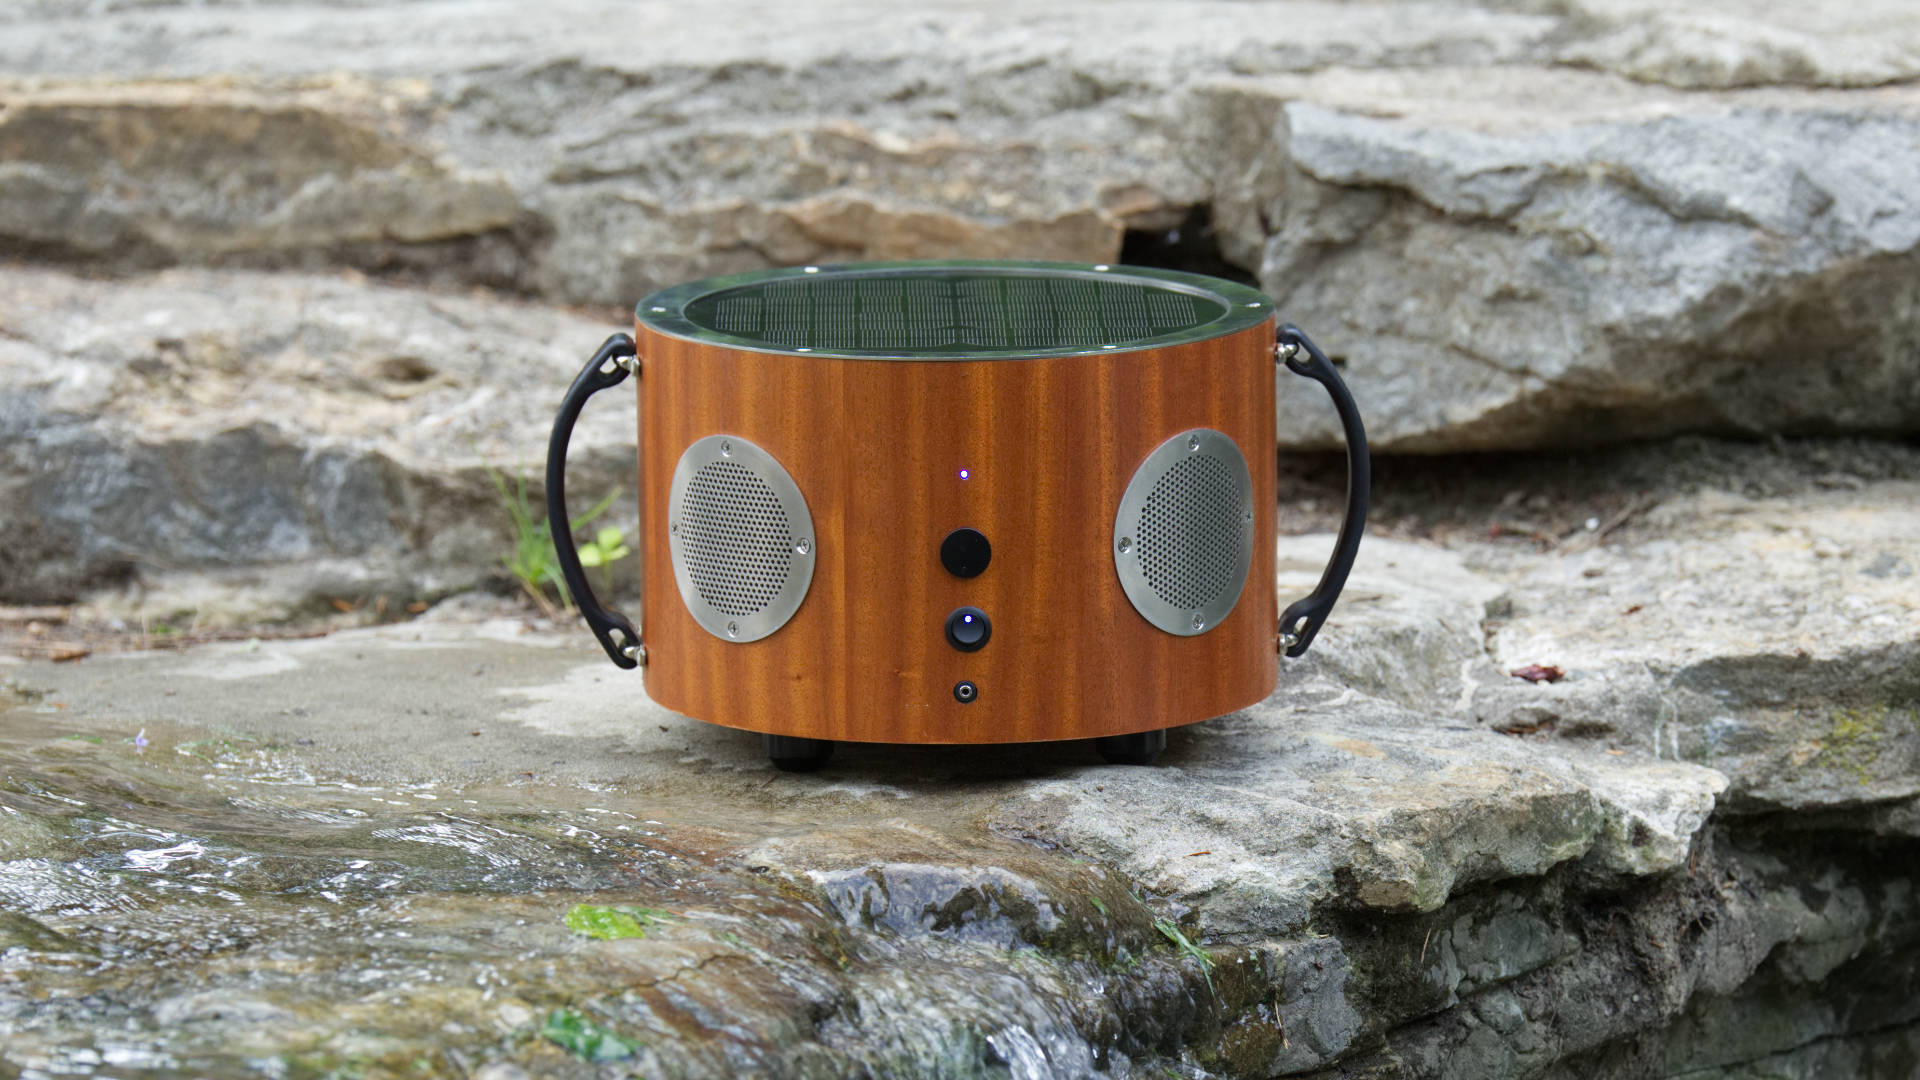 Sunny is a Water Resistant Speaker made by SoularSound